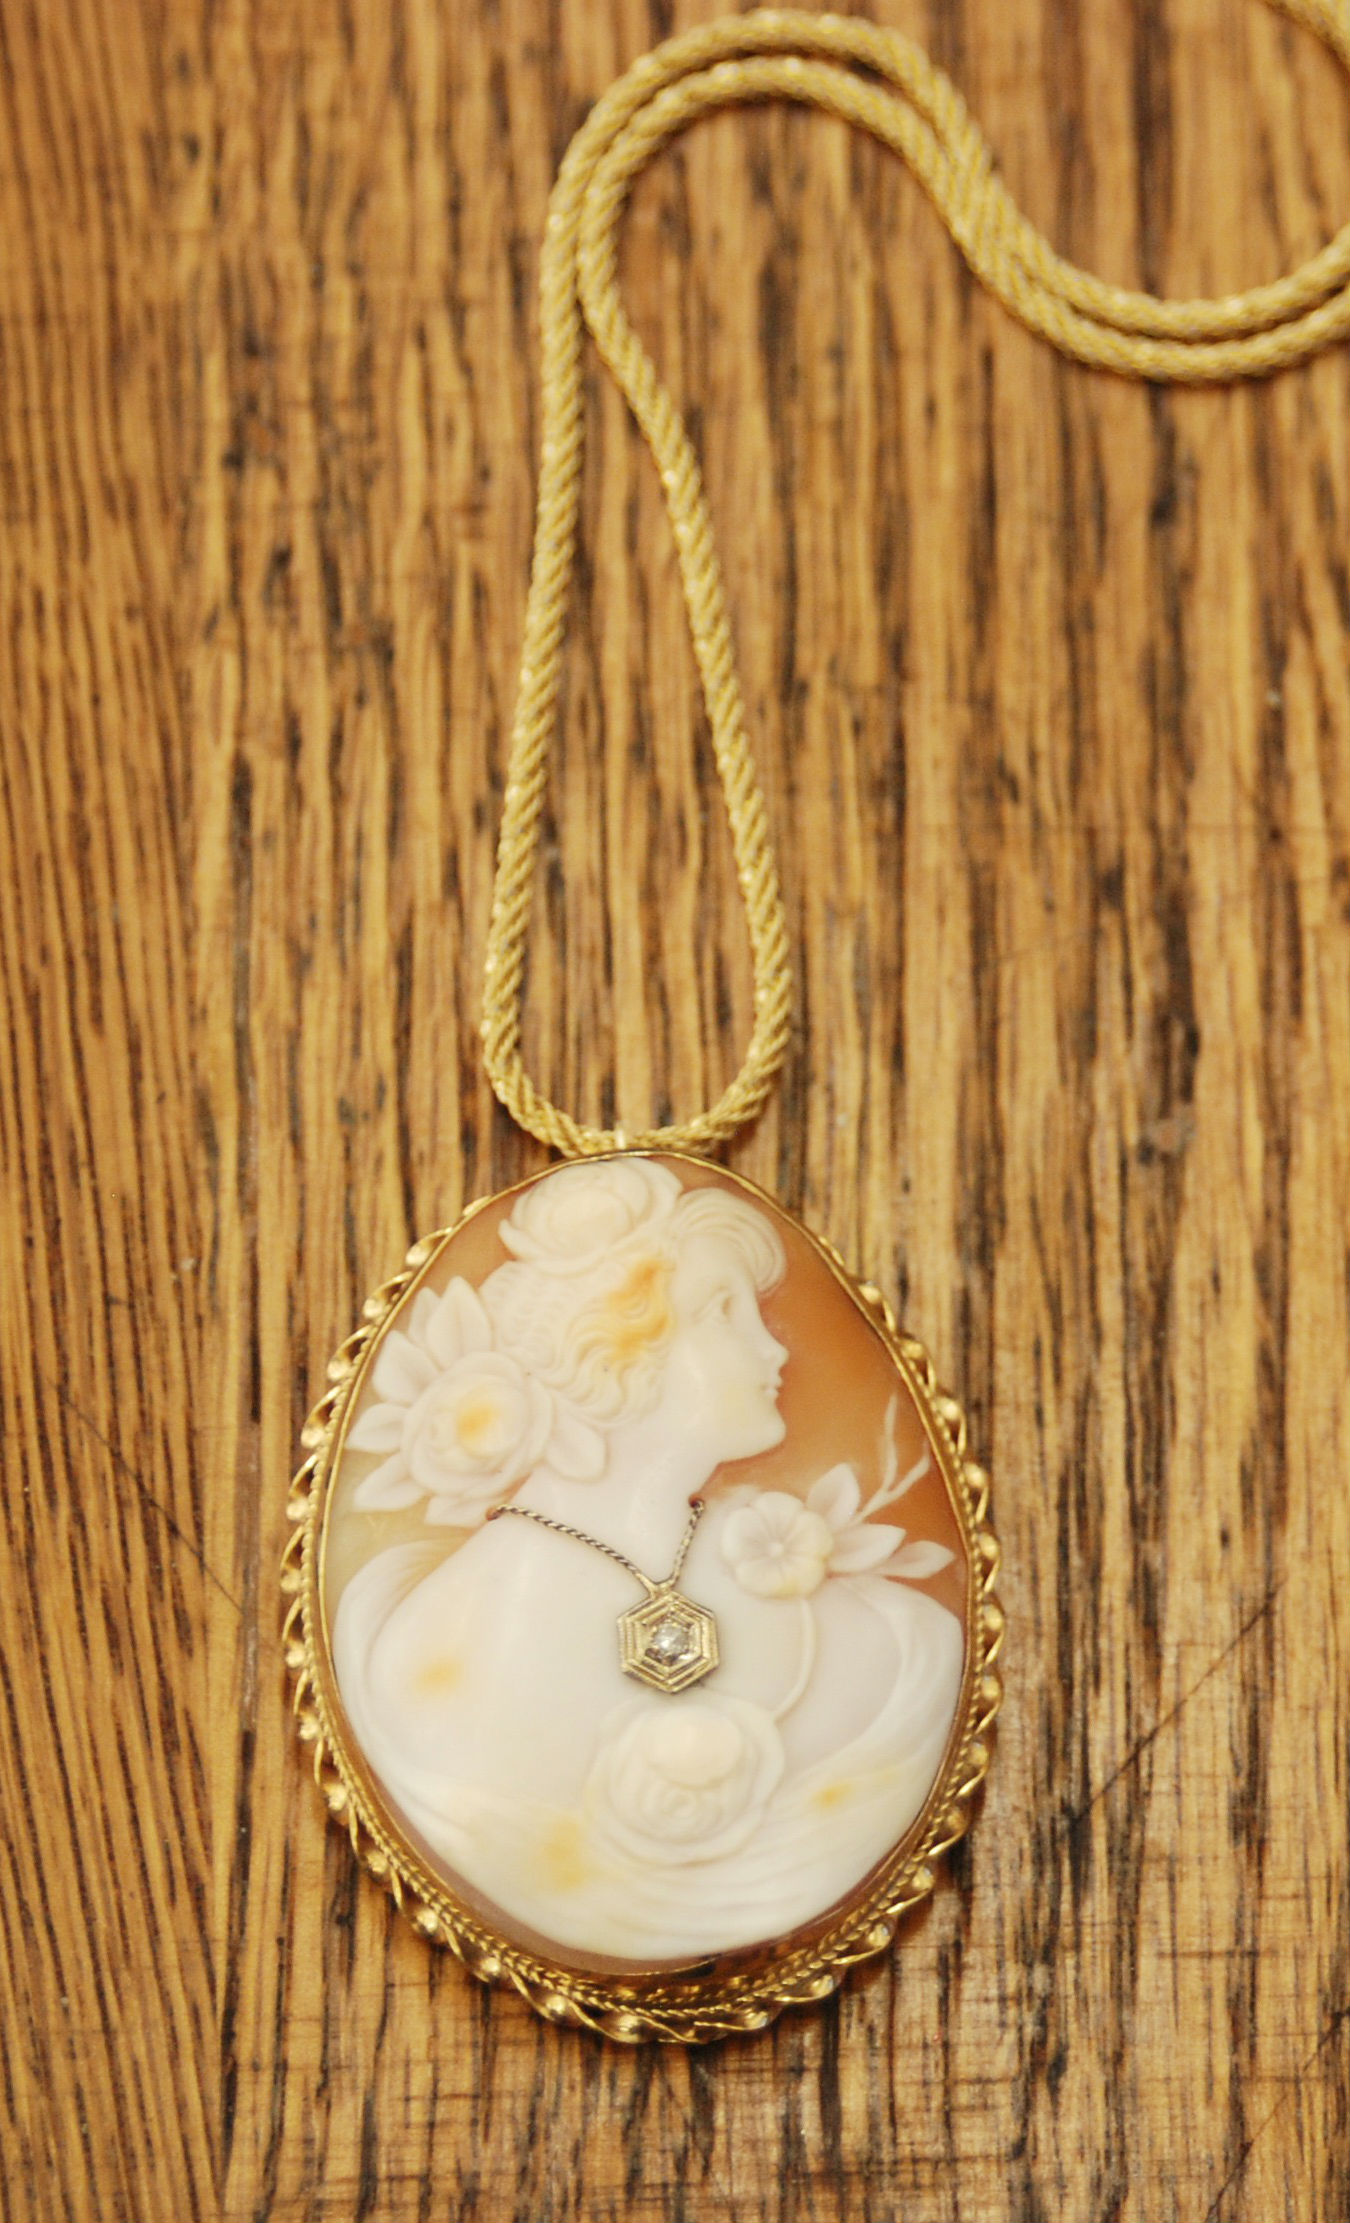 14K Gold Cameo with Diamond